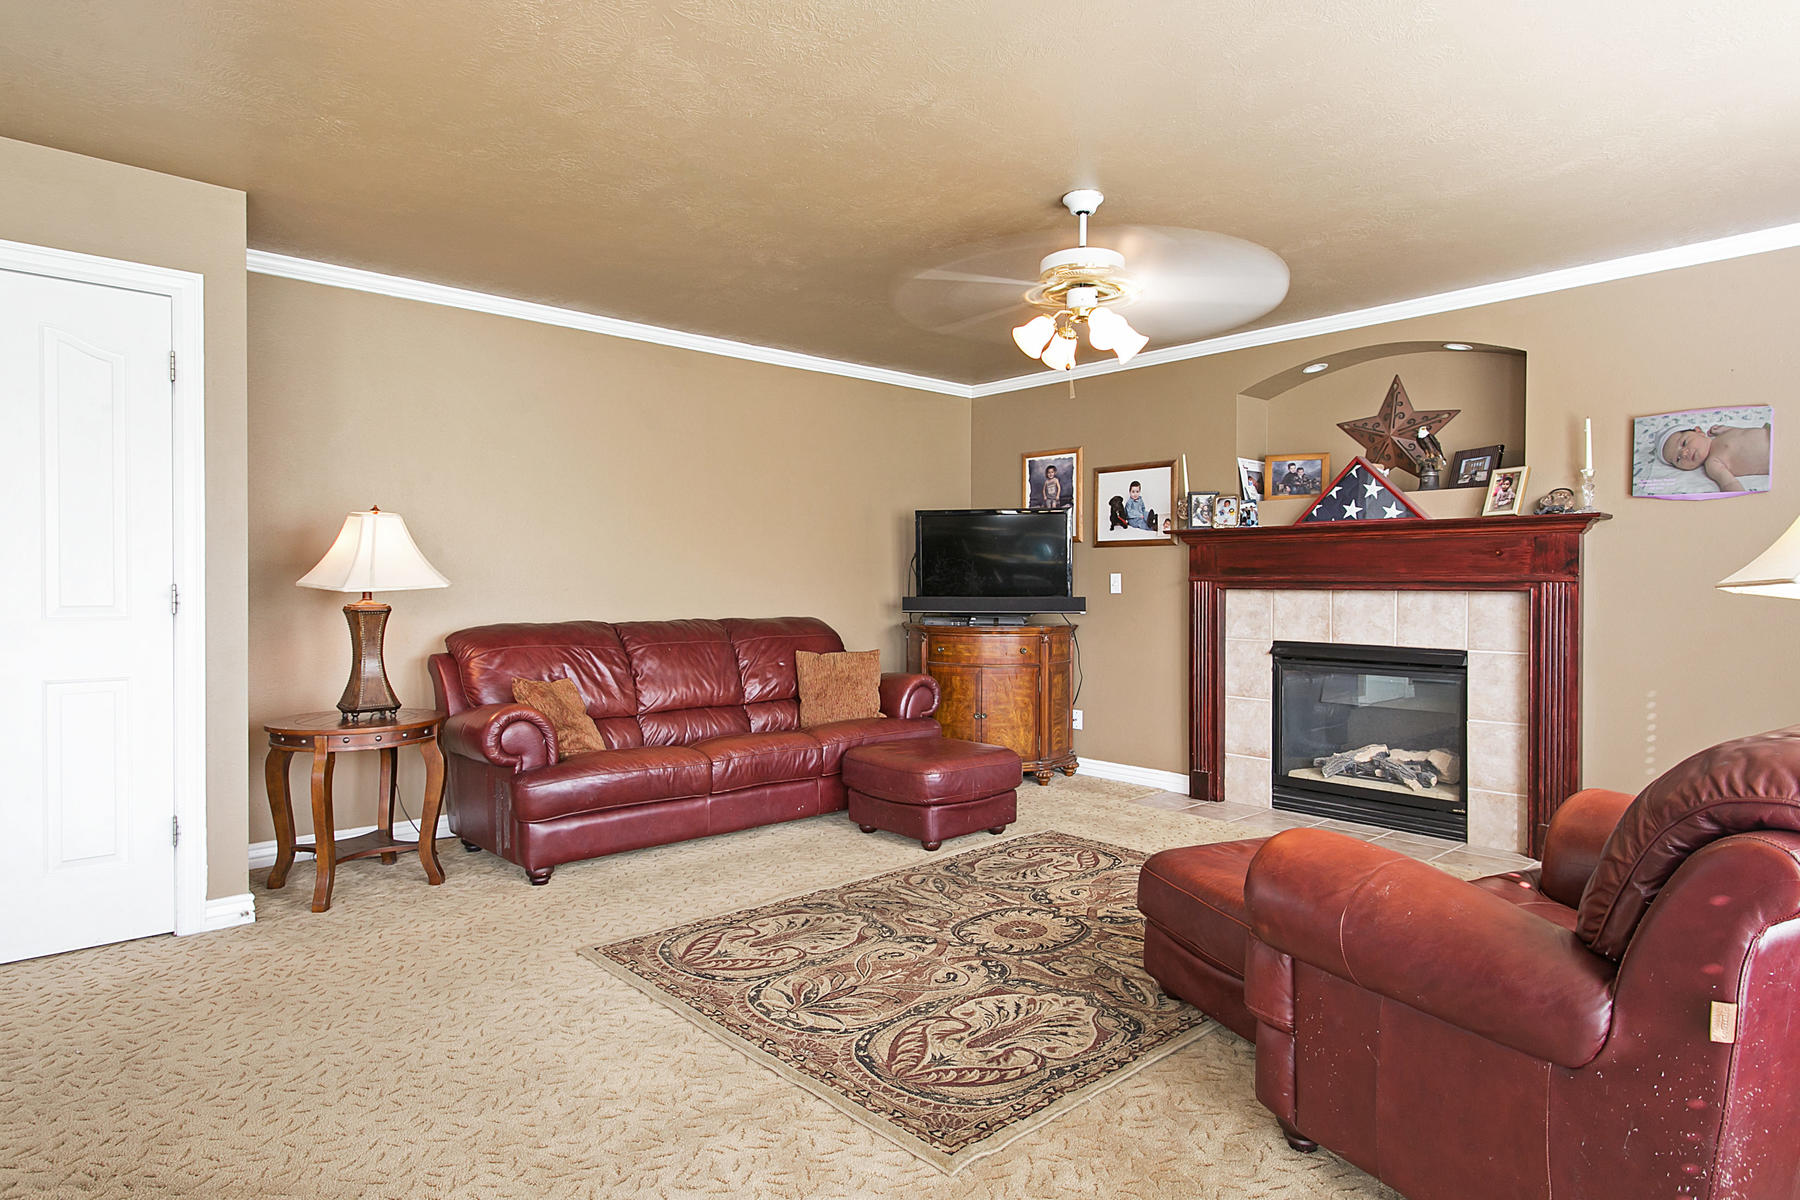 Additional photo for property listing at Room to Roam 11097 S Creek Trail Ct South Jordan, Utah 84095 United States